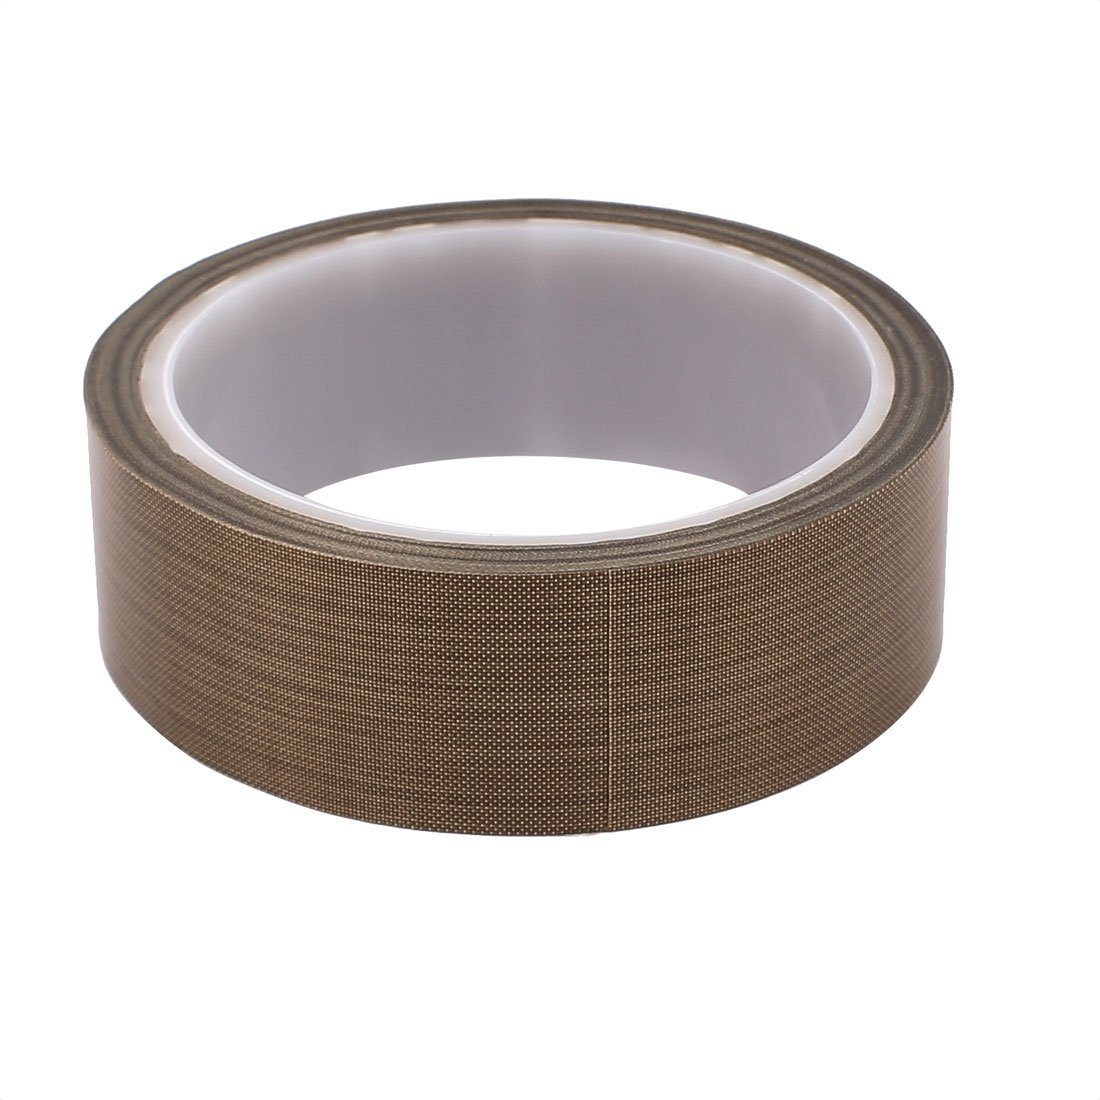 DealMux 0.13 x 30mm PTFE Tape High Temperature Resistant Tape Non-adhesive Tape for Sealing Machine